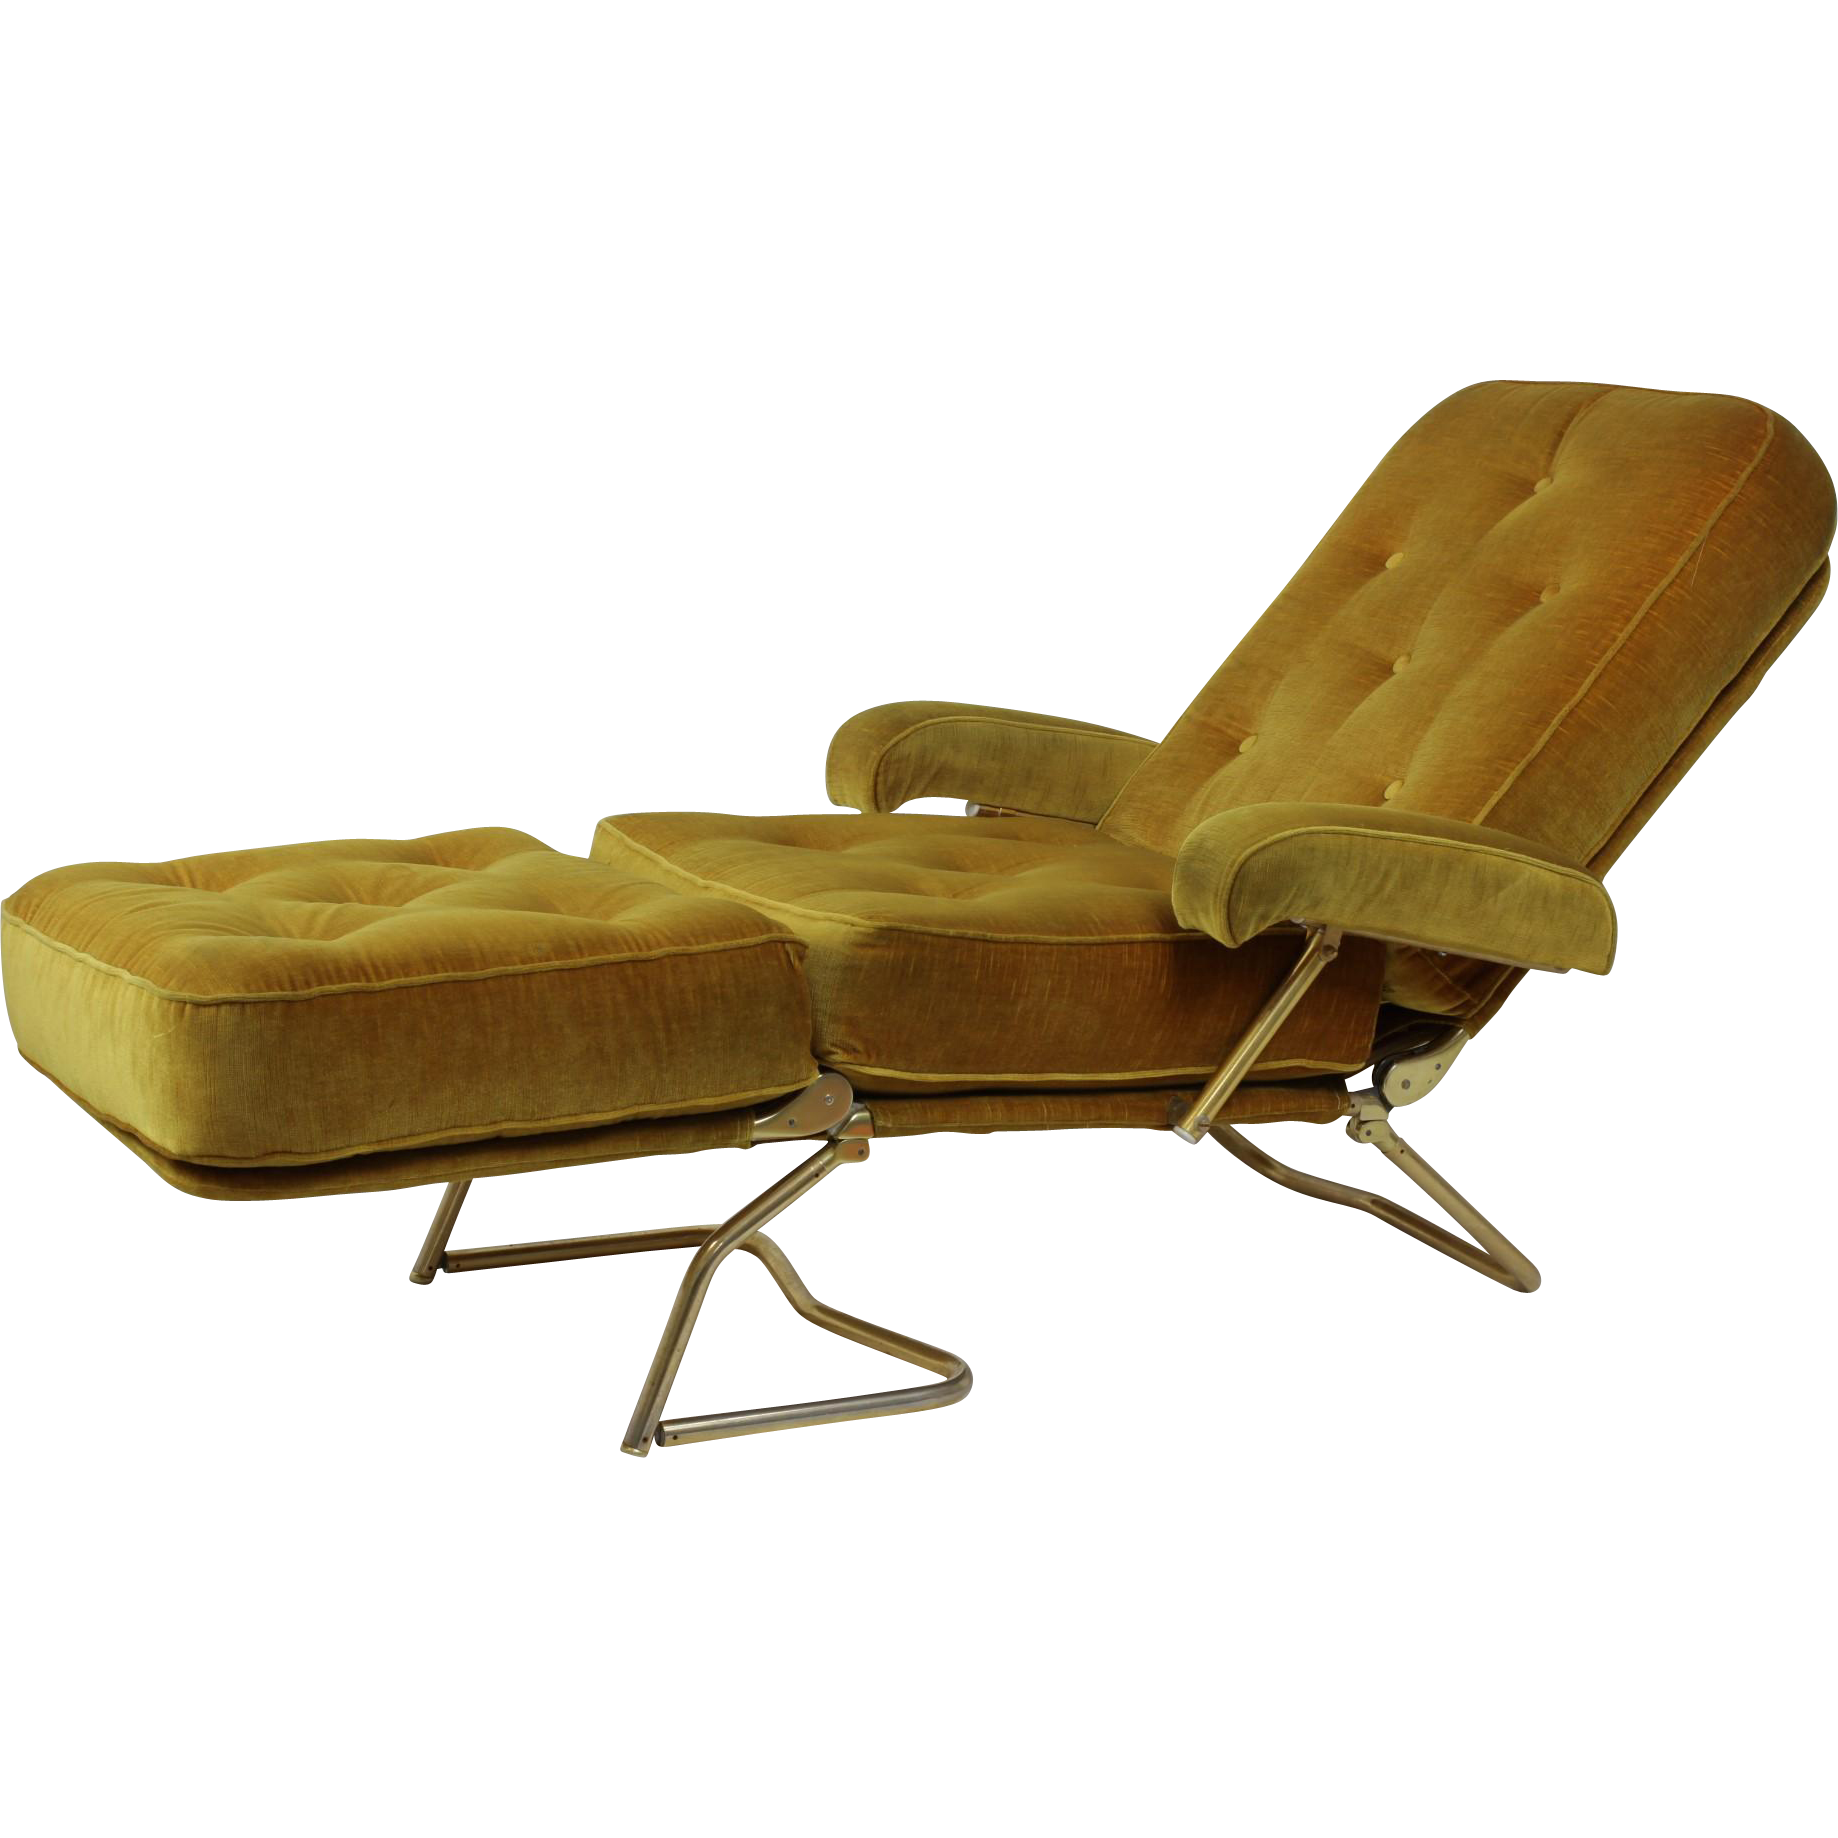 Groovy French Designer Chaise Lounge Found At Rubylane Com Gmtry Best Dining Table And Chair Ideas Images Gmtryco